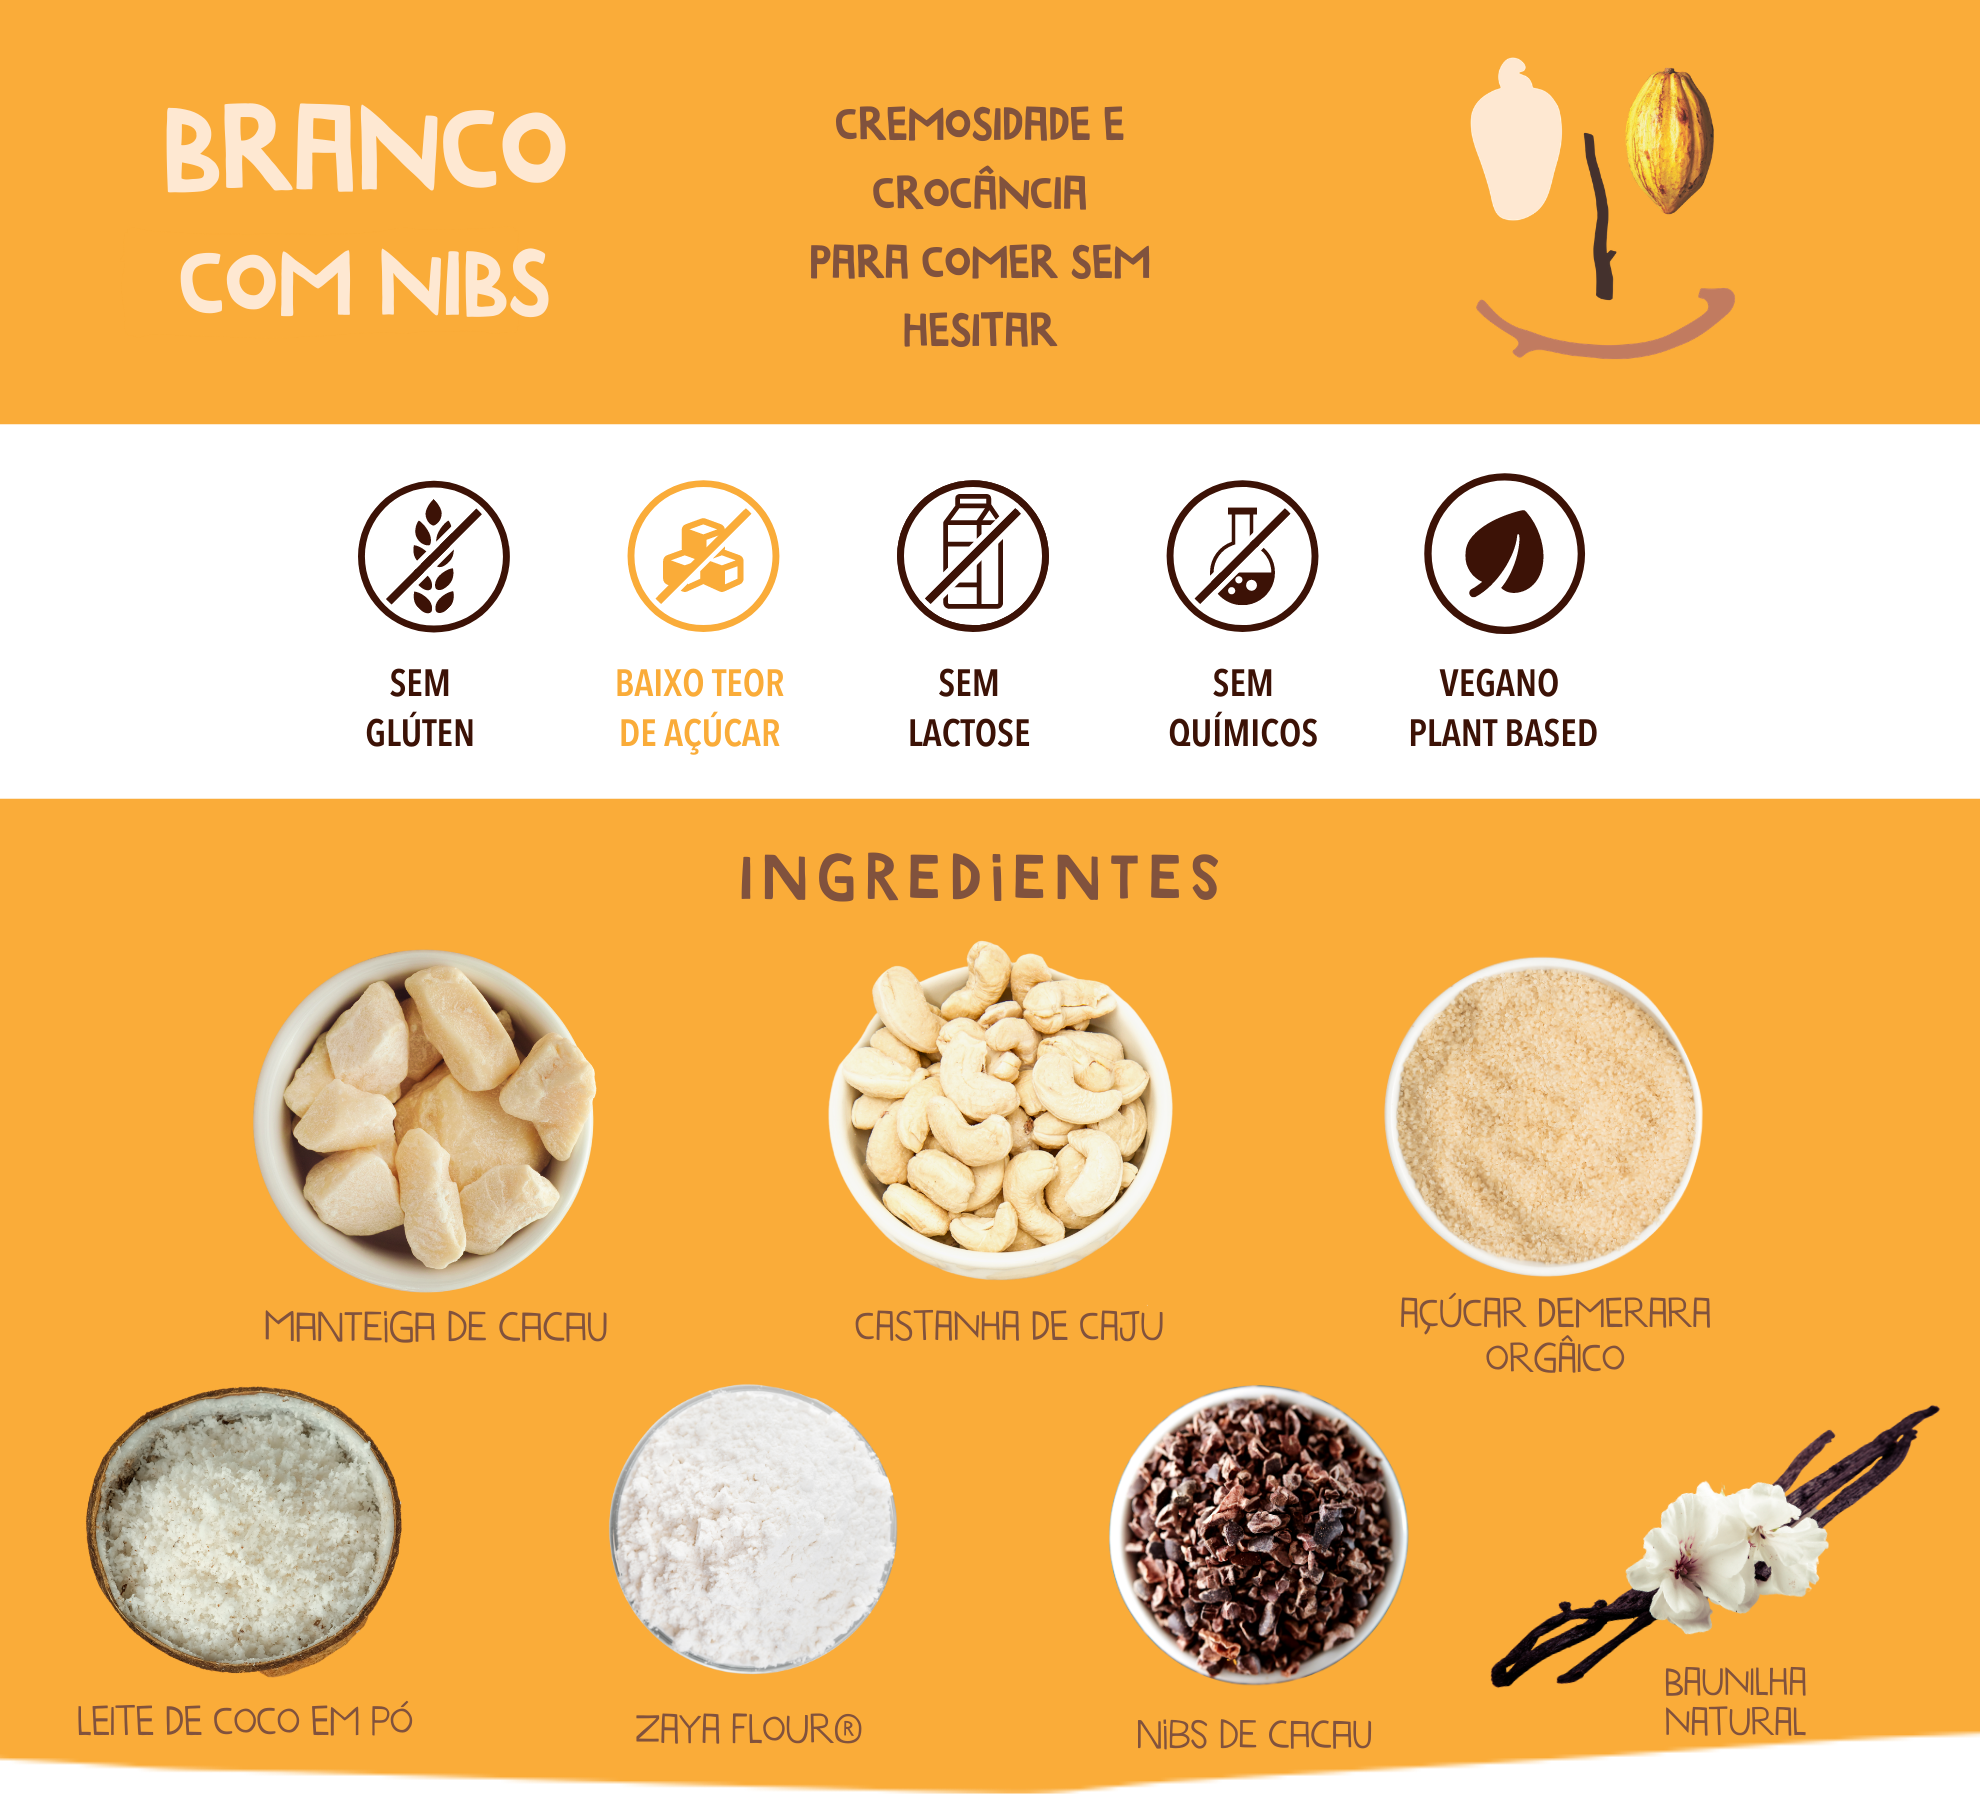 chocolate branco com nibs cookoa ingredientes